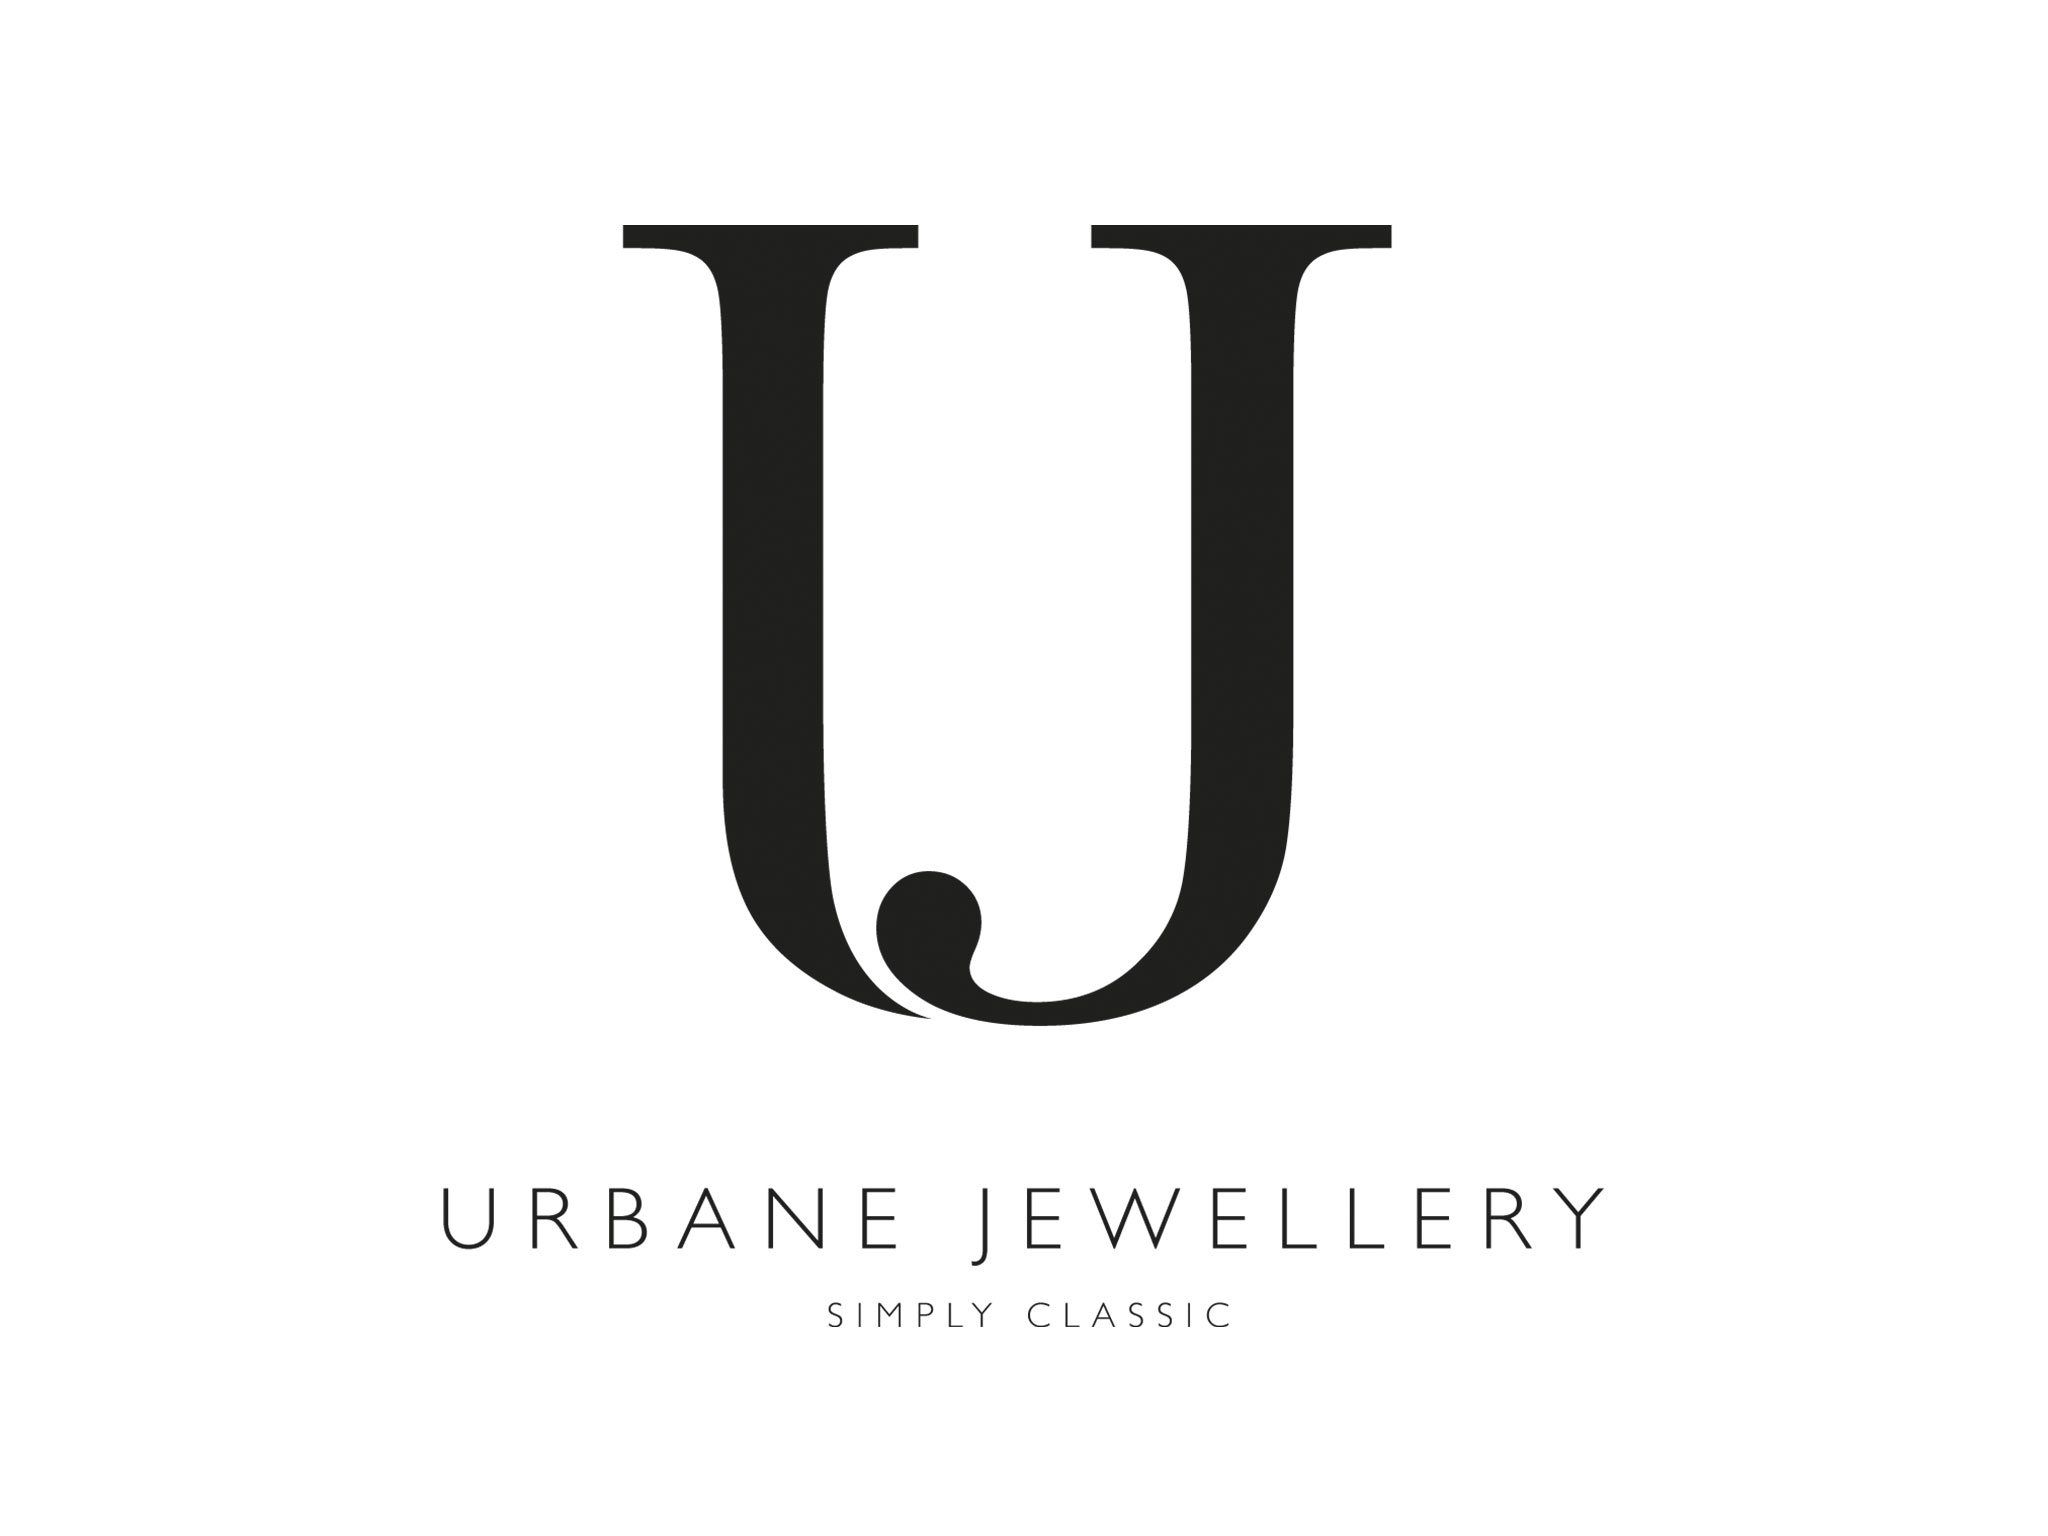 Logo design for Urbane Jewellery